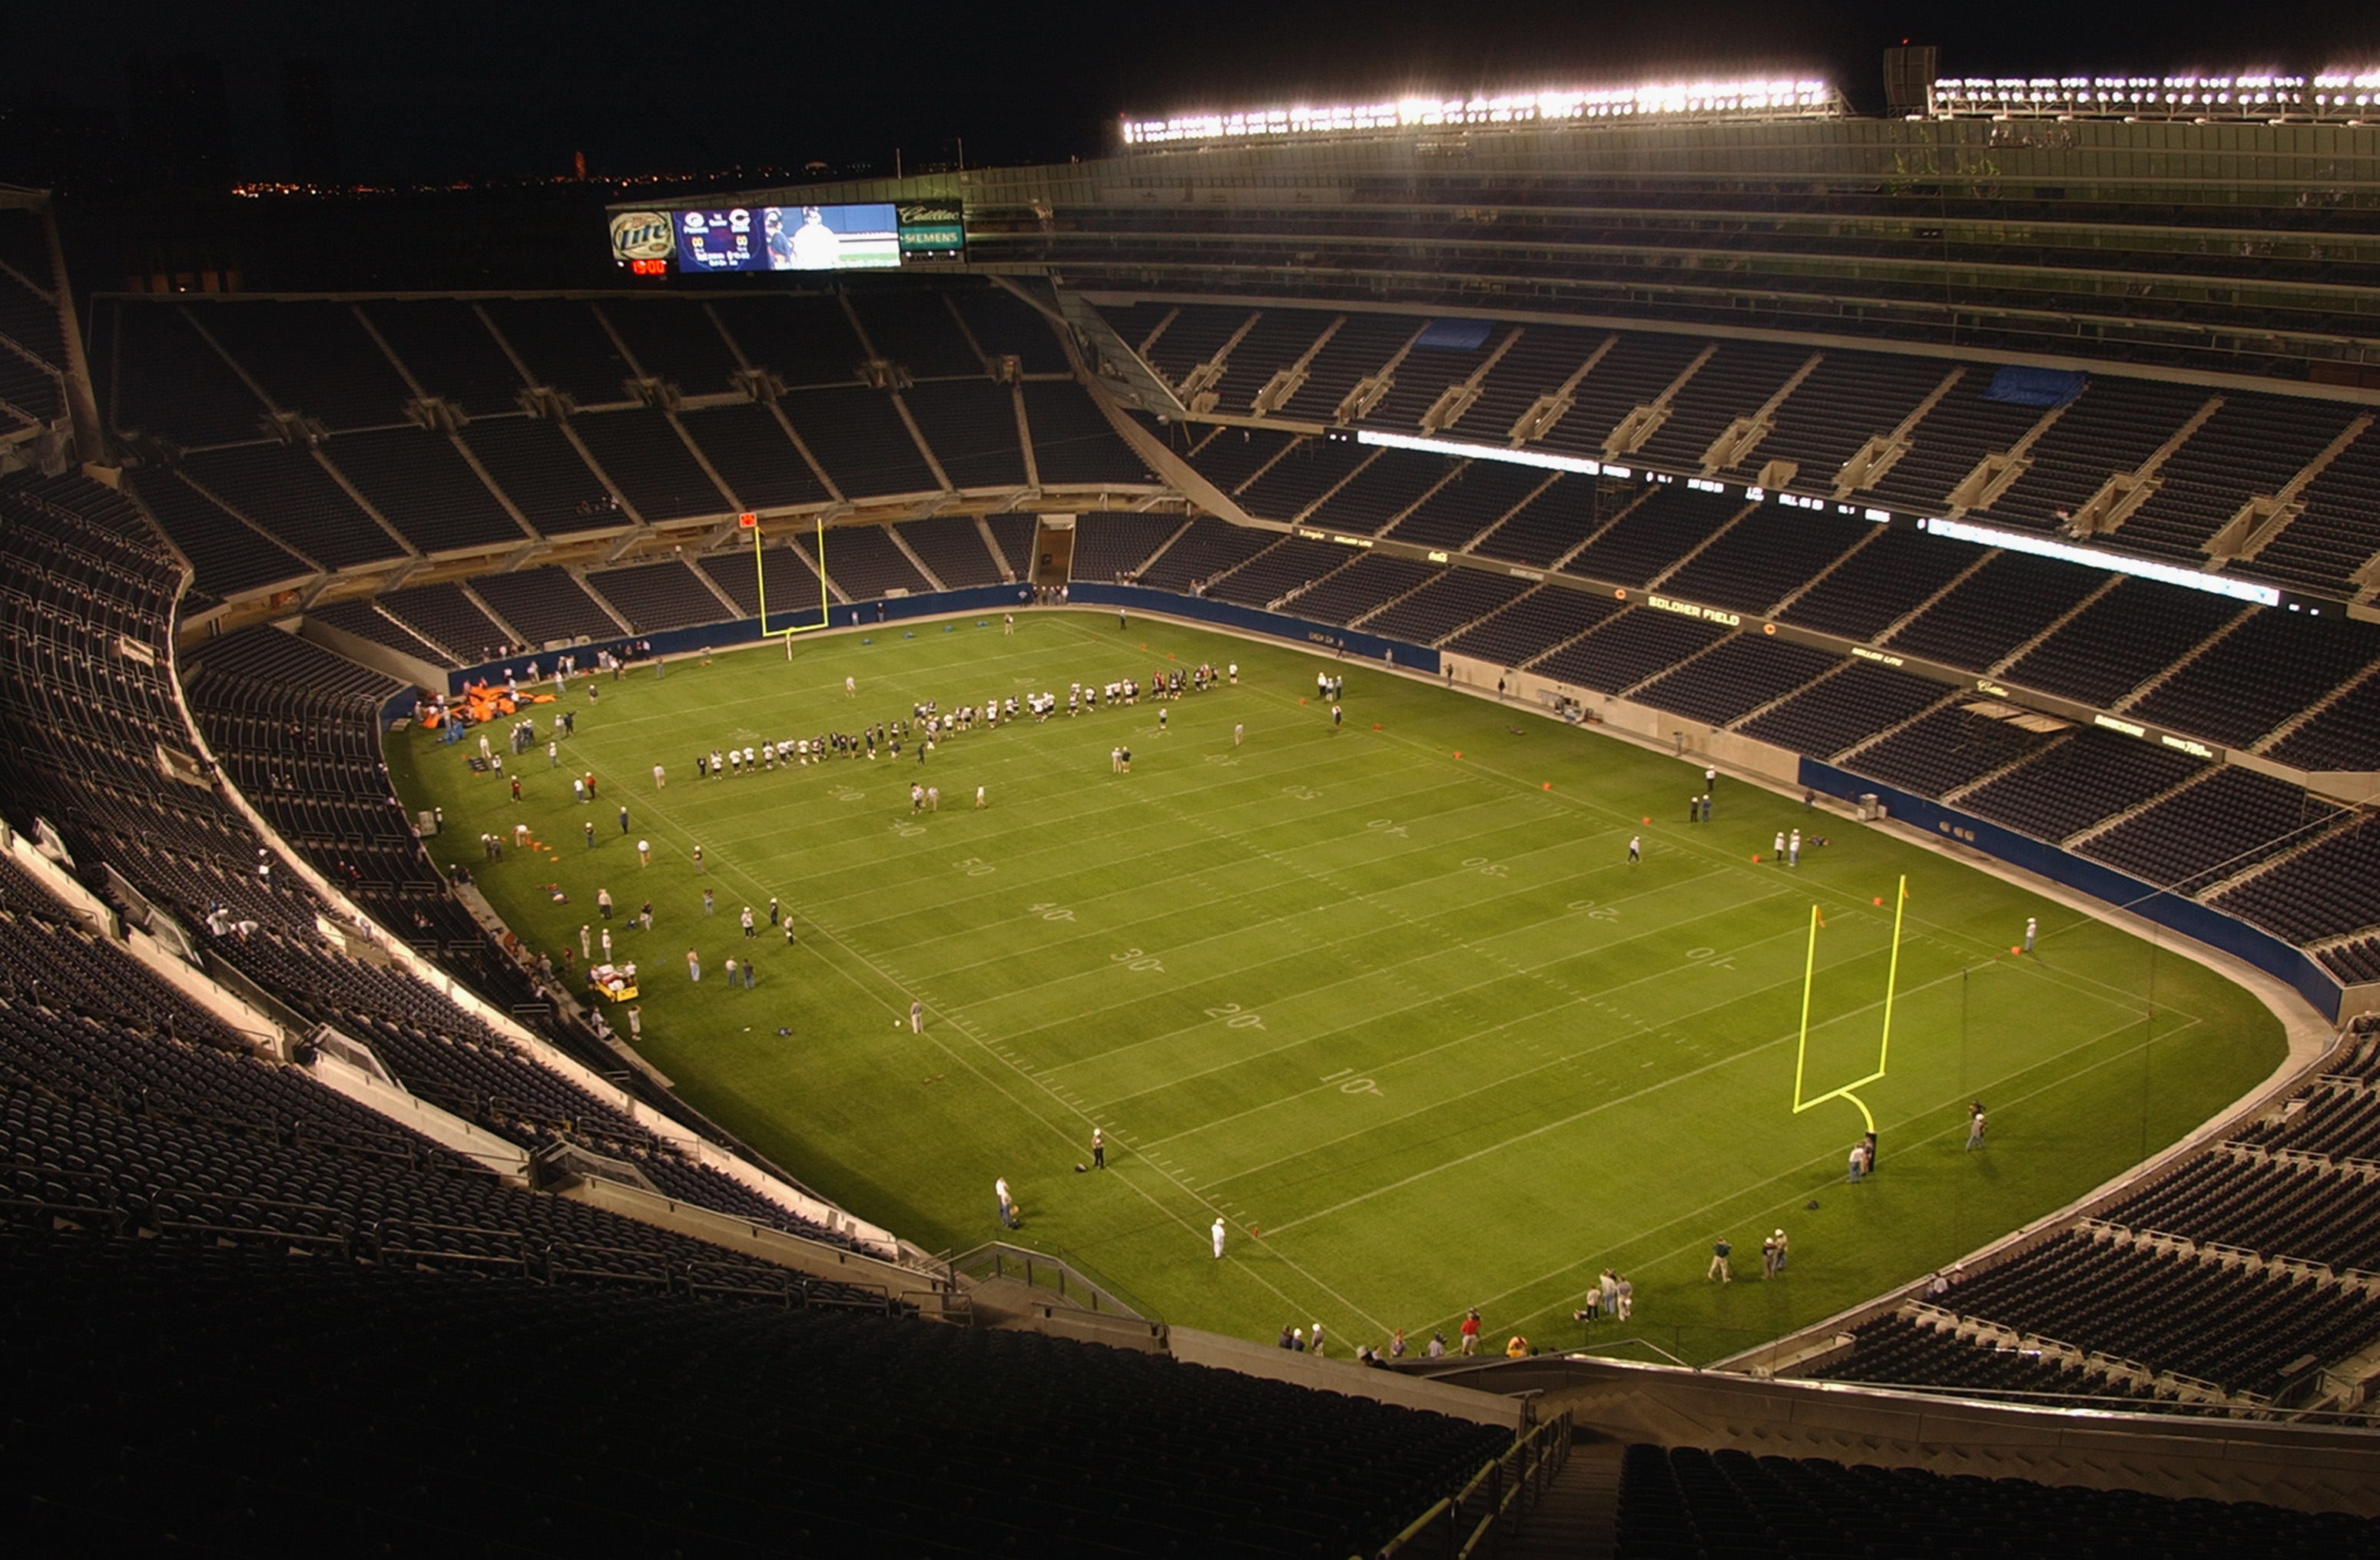 New Soldier Field and stadium